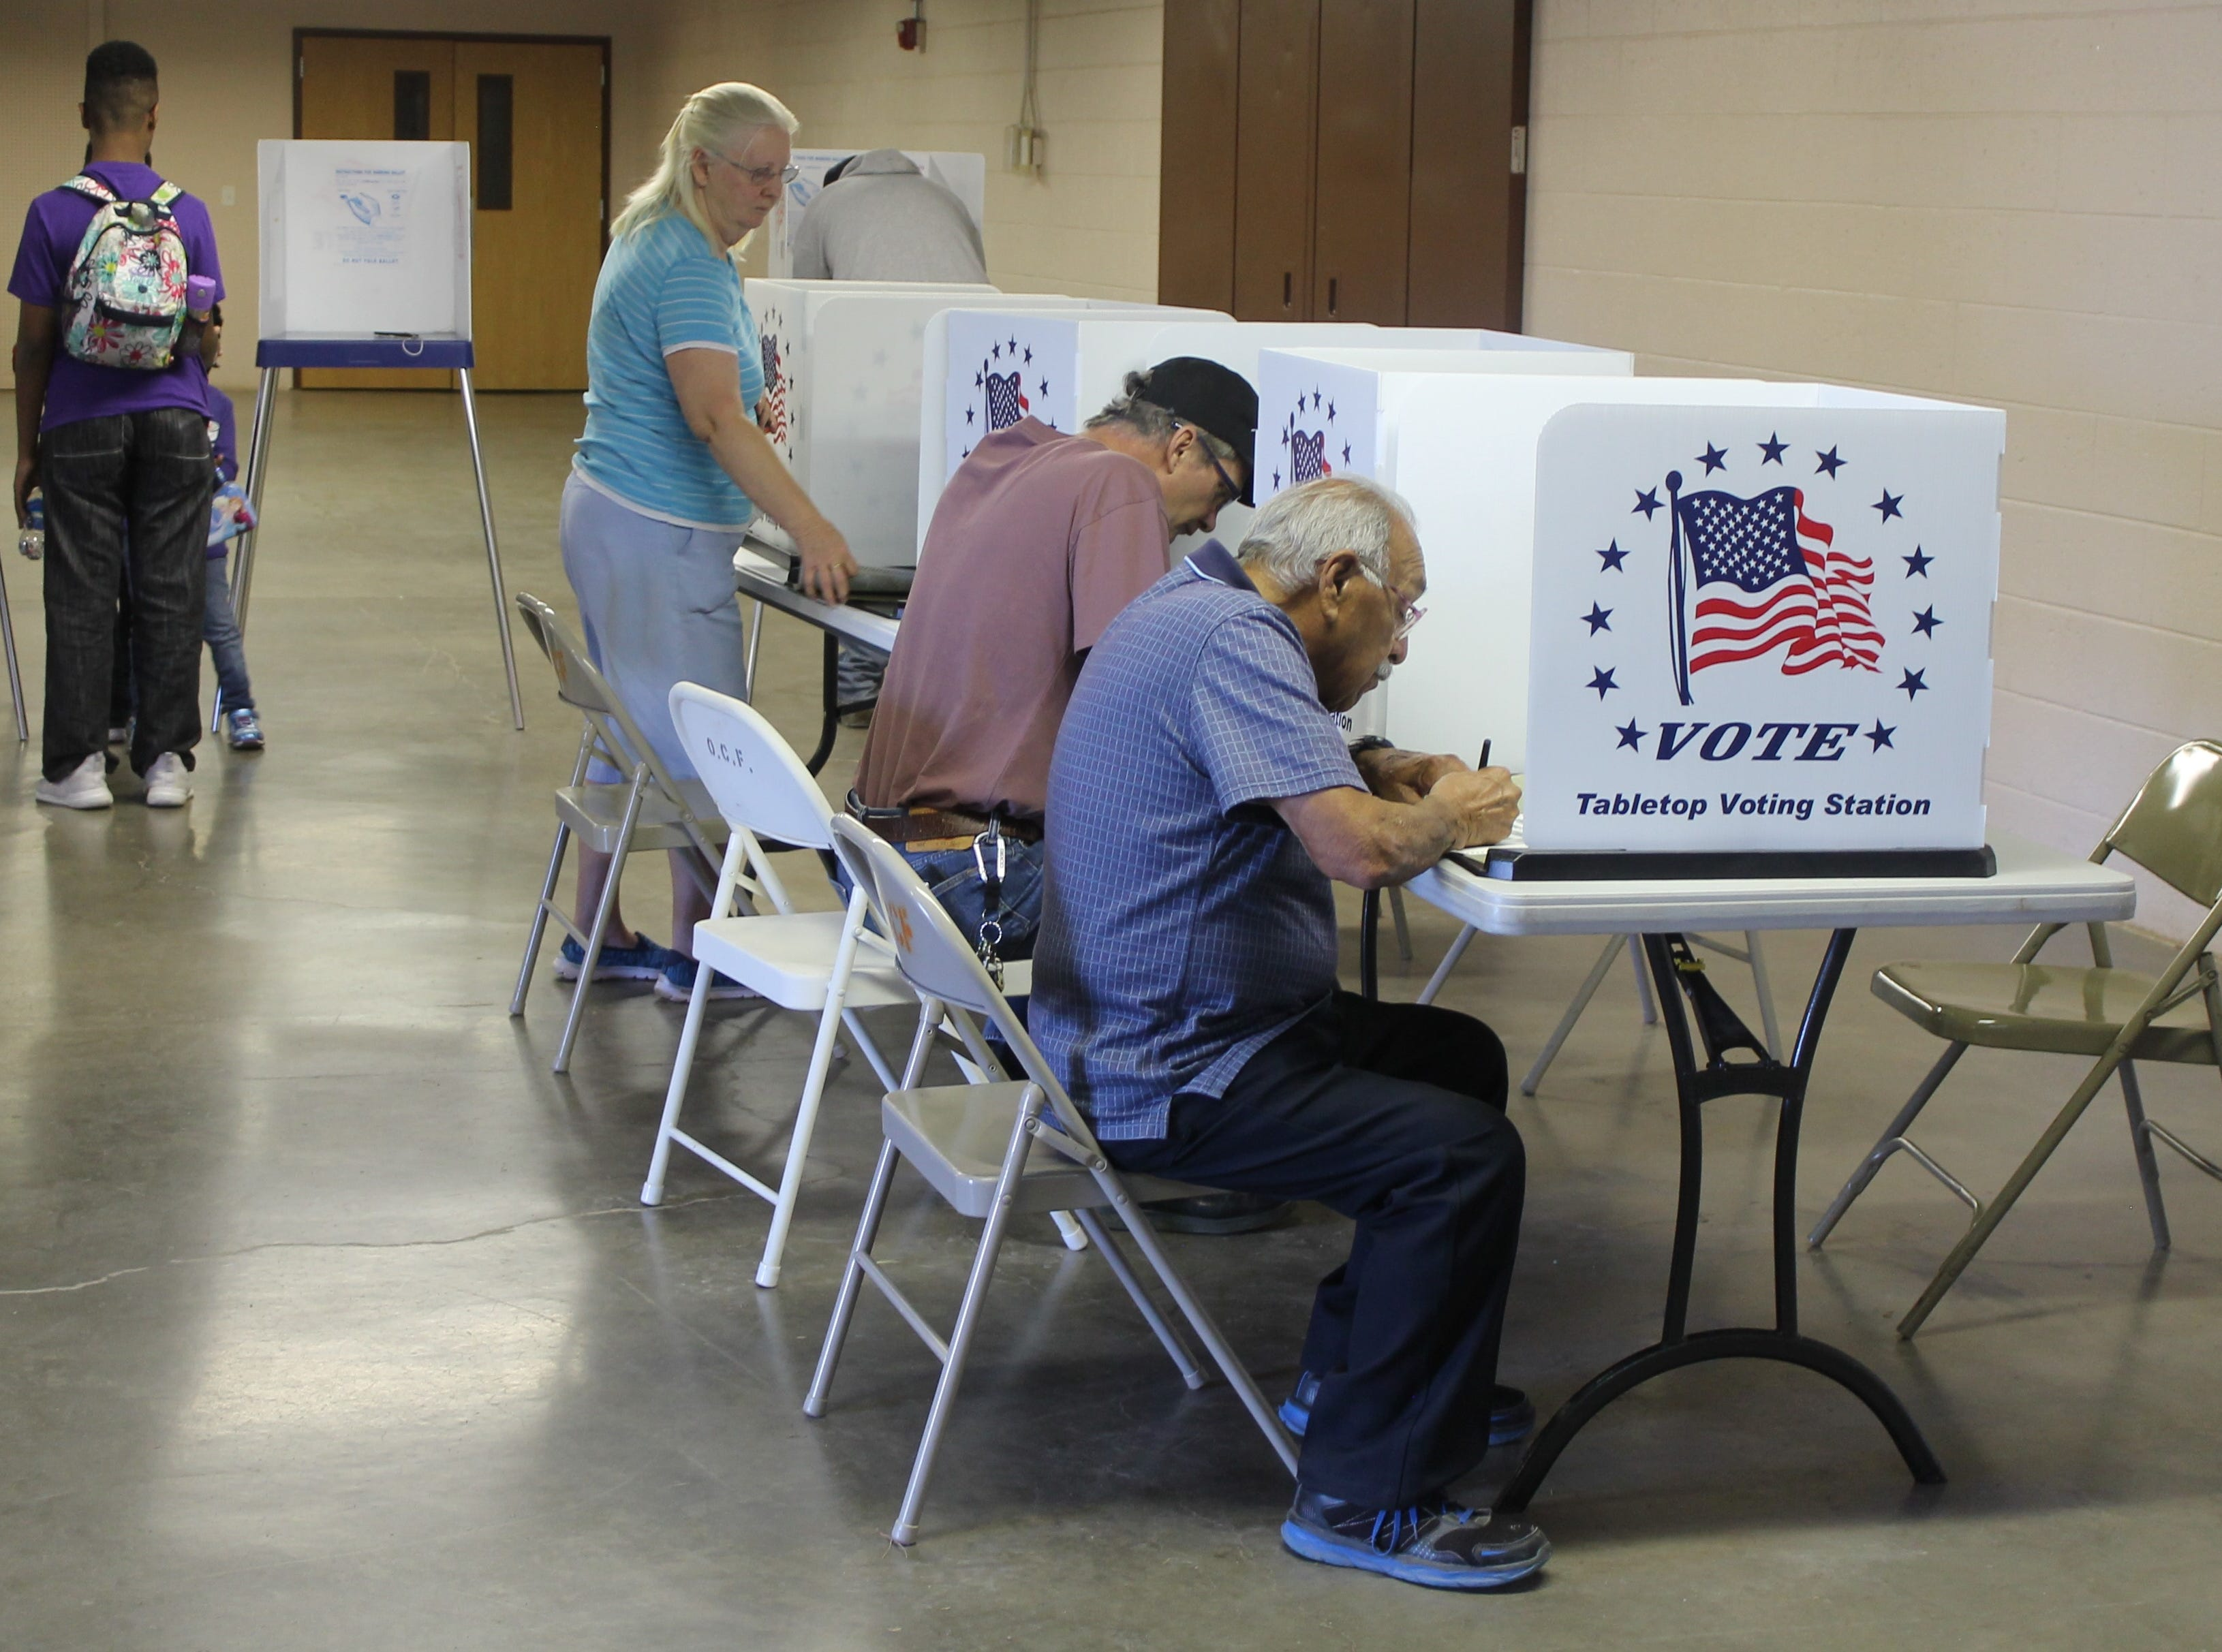 Statewide, New Mexico had 1,261,532 people registered to vote in the 2018 midterm elections. Some Alamogordo voters cast their ballots at the Otero County Fairgrounds on Nov. 6.